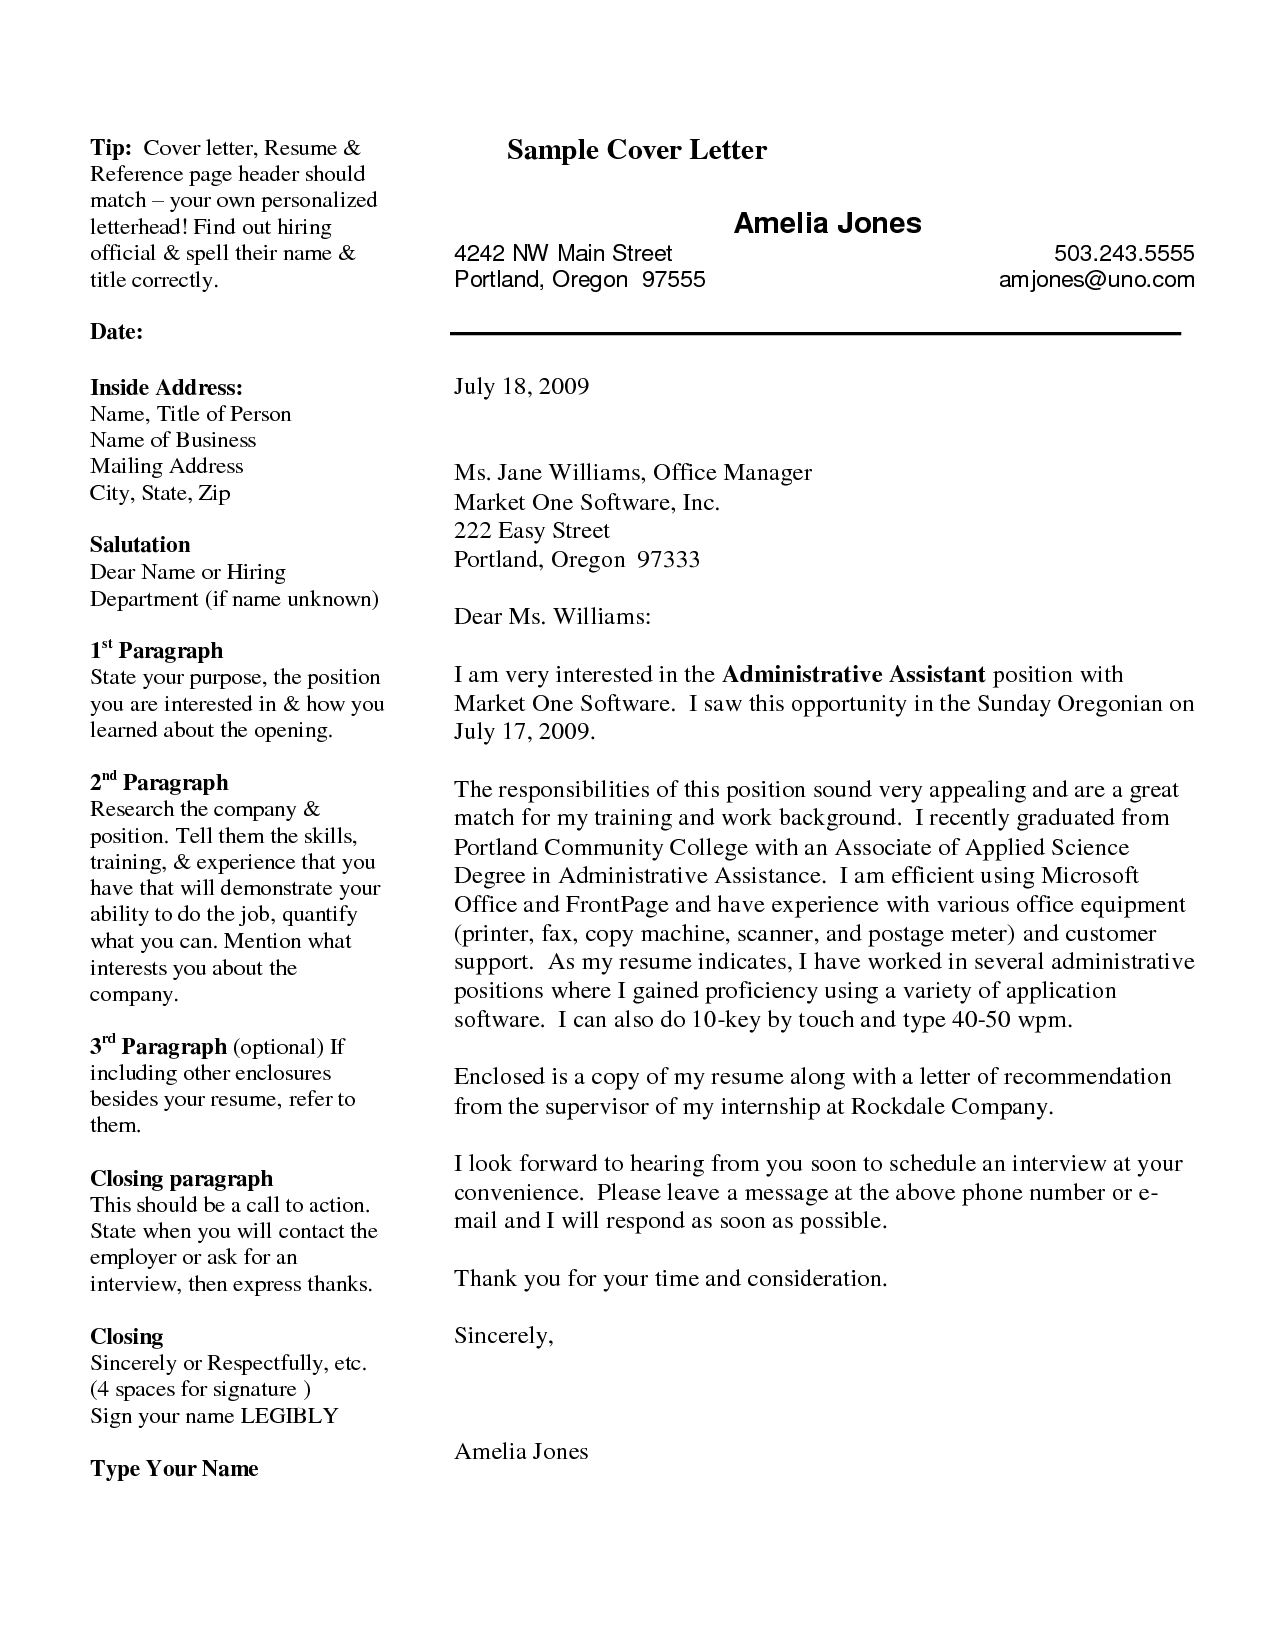 Resume Interests Examples Professional Resume Cover Letter Samplesprofessional Resume Cover